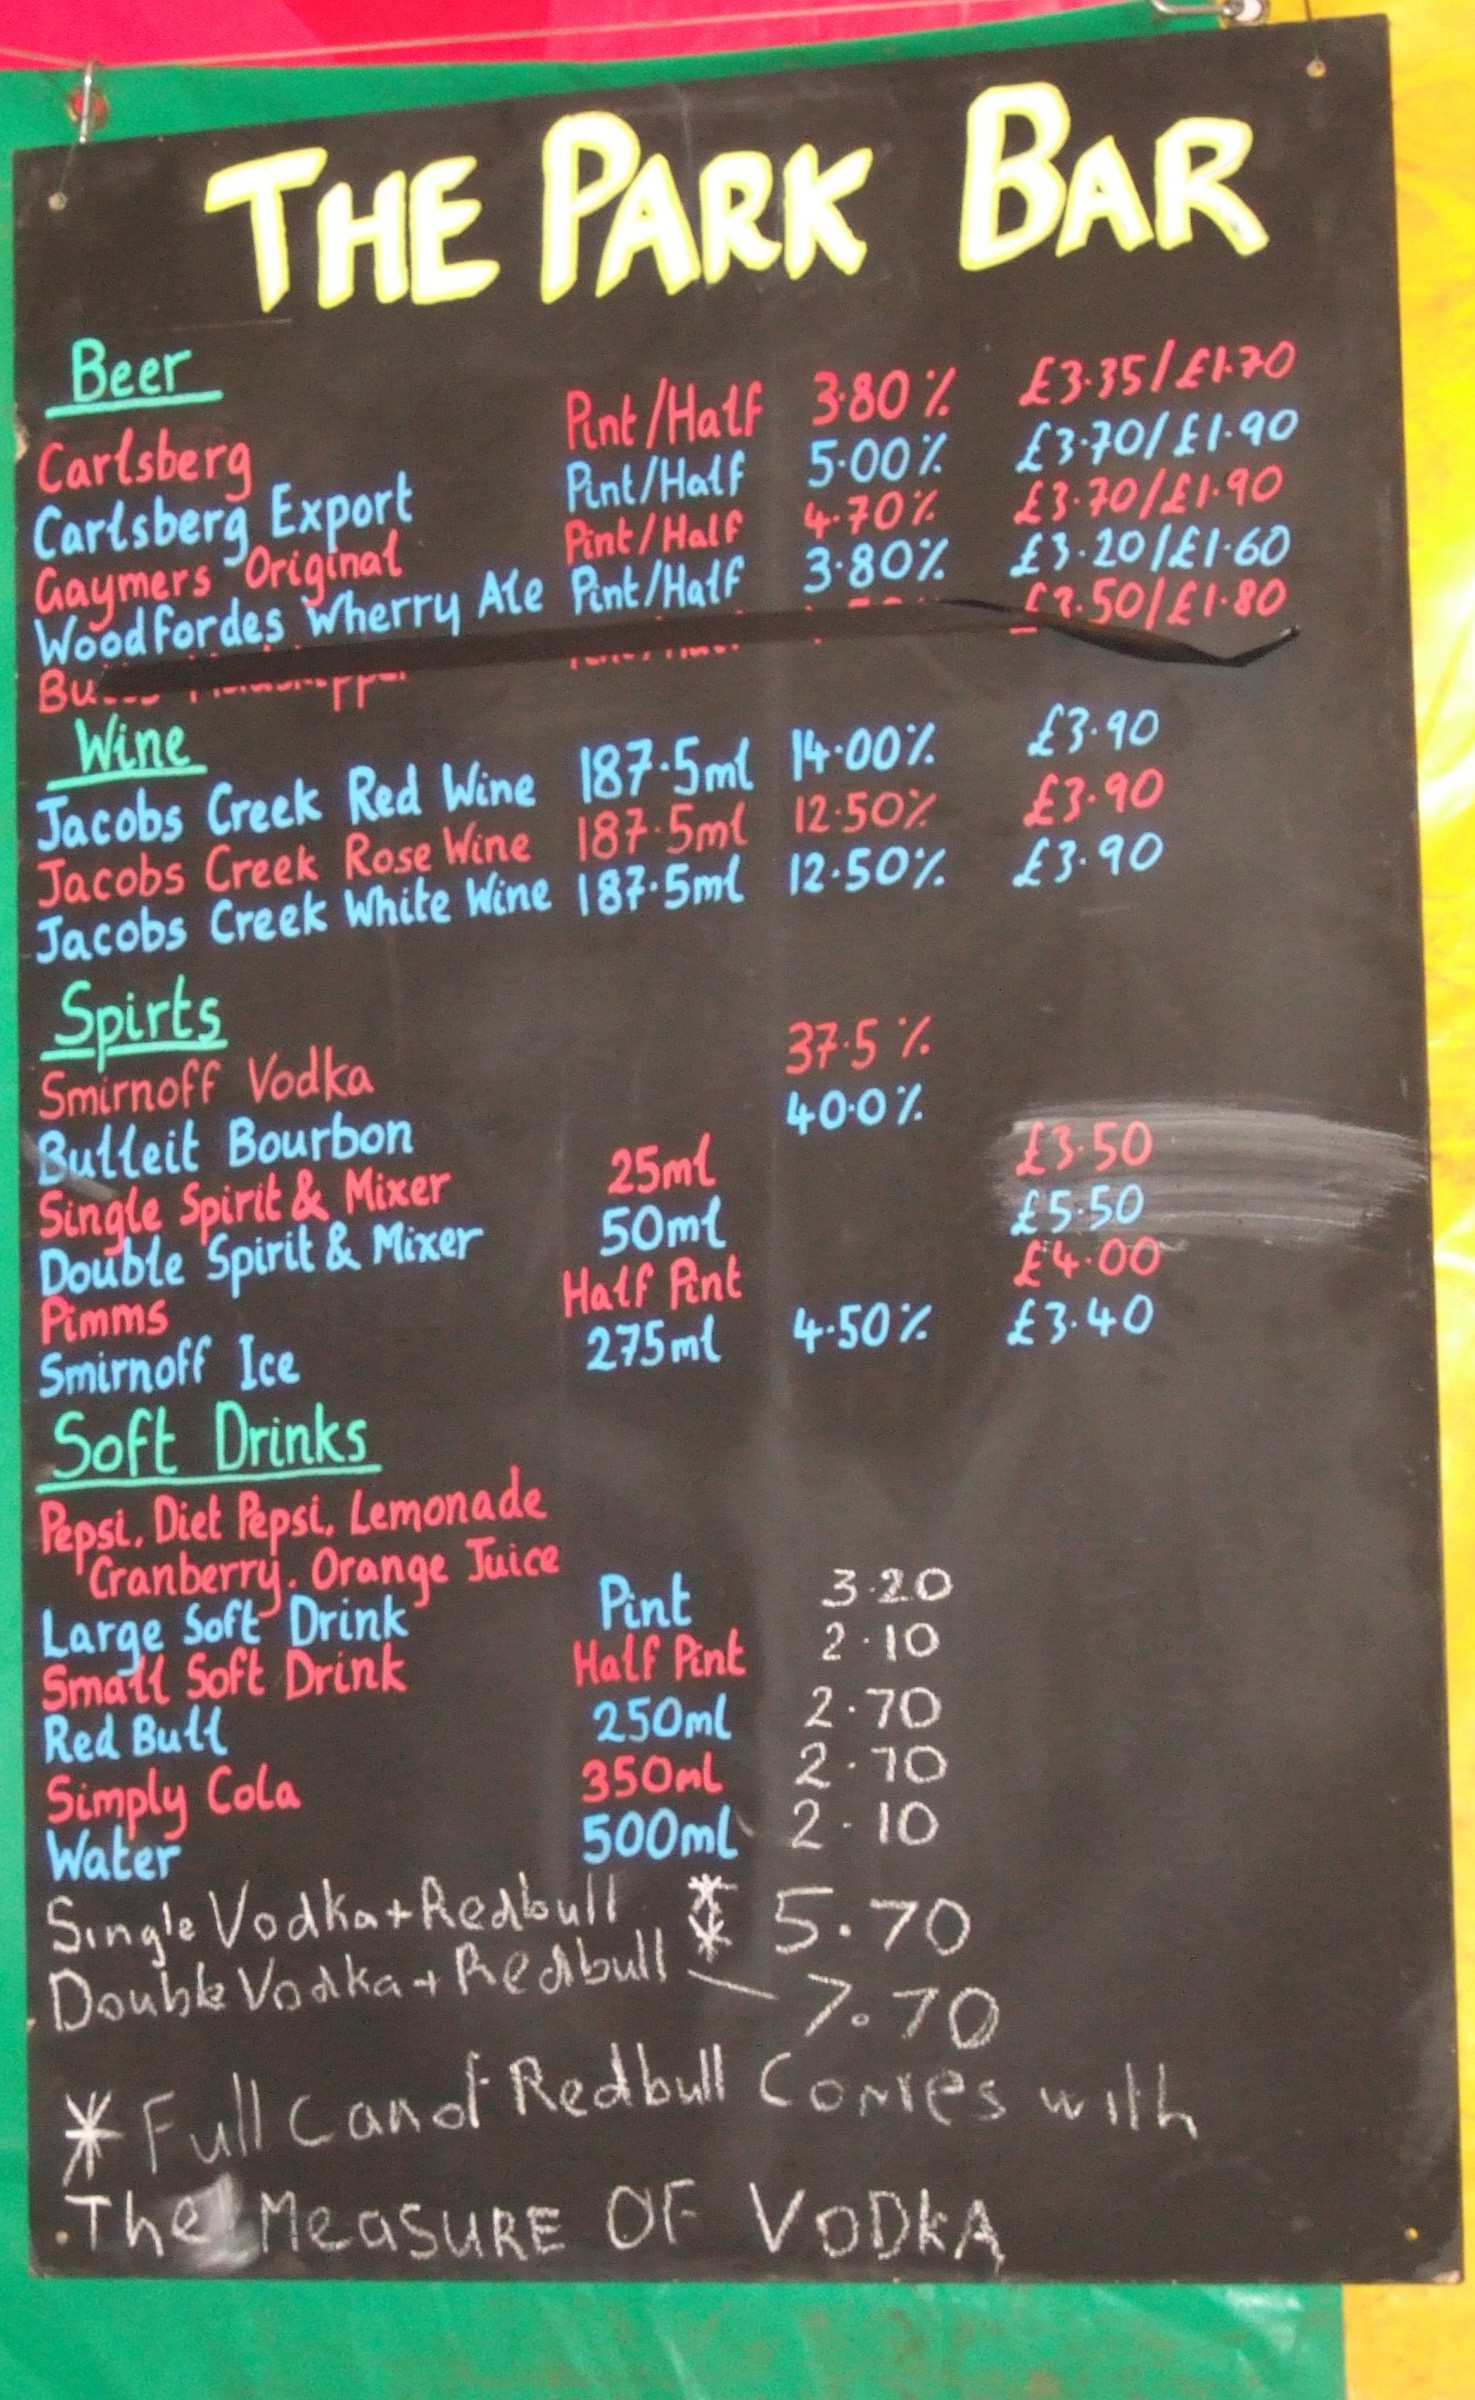 glasto-price-list.jpg